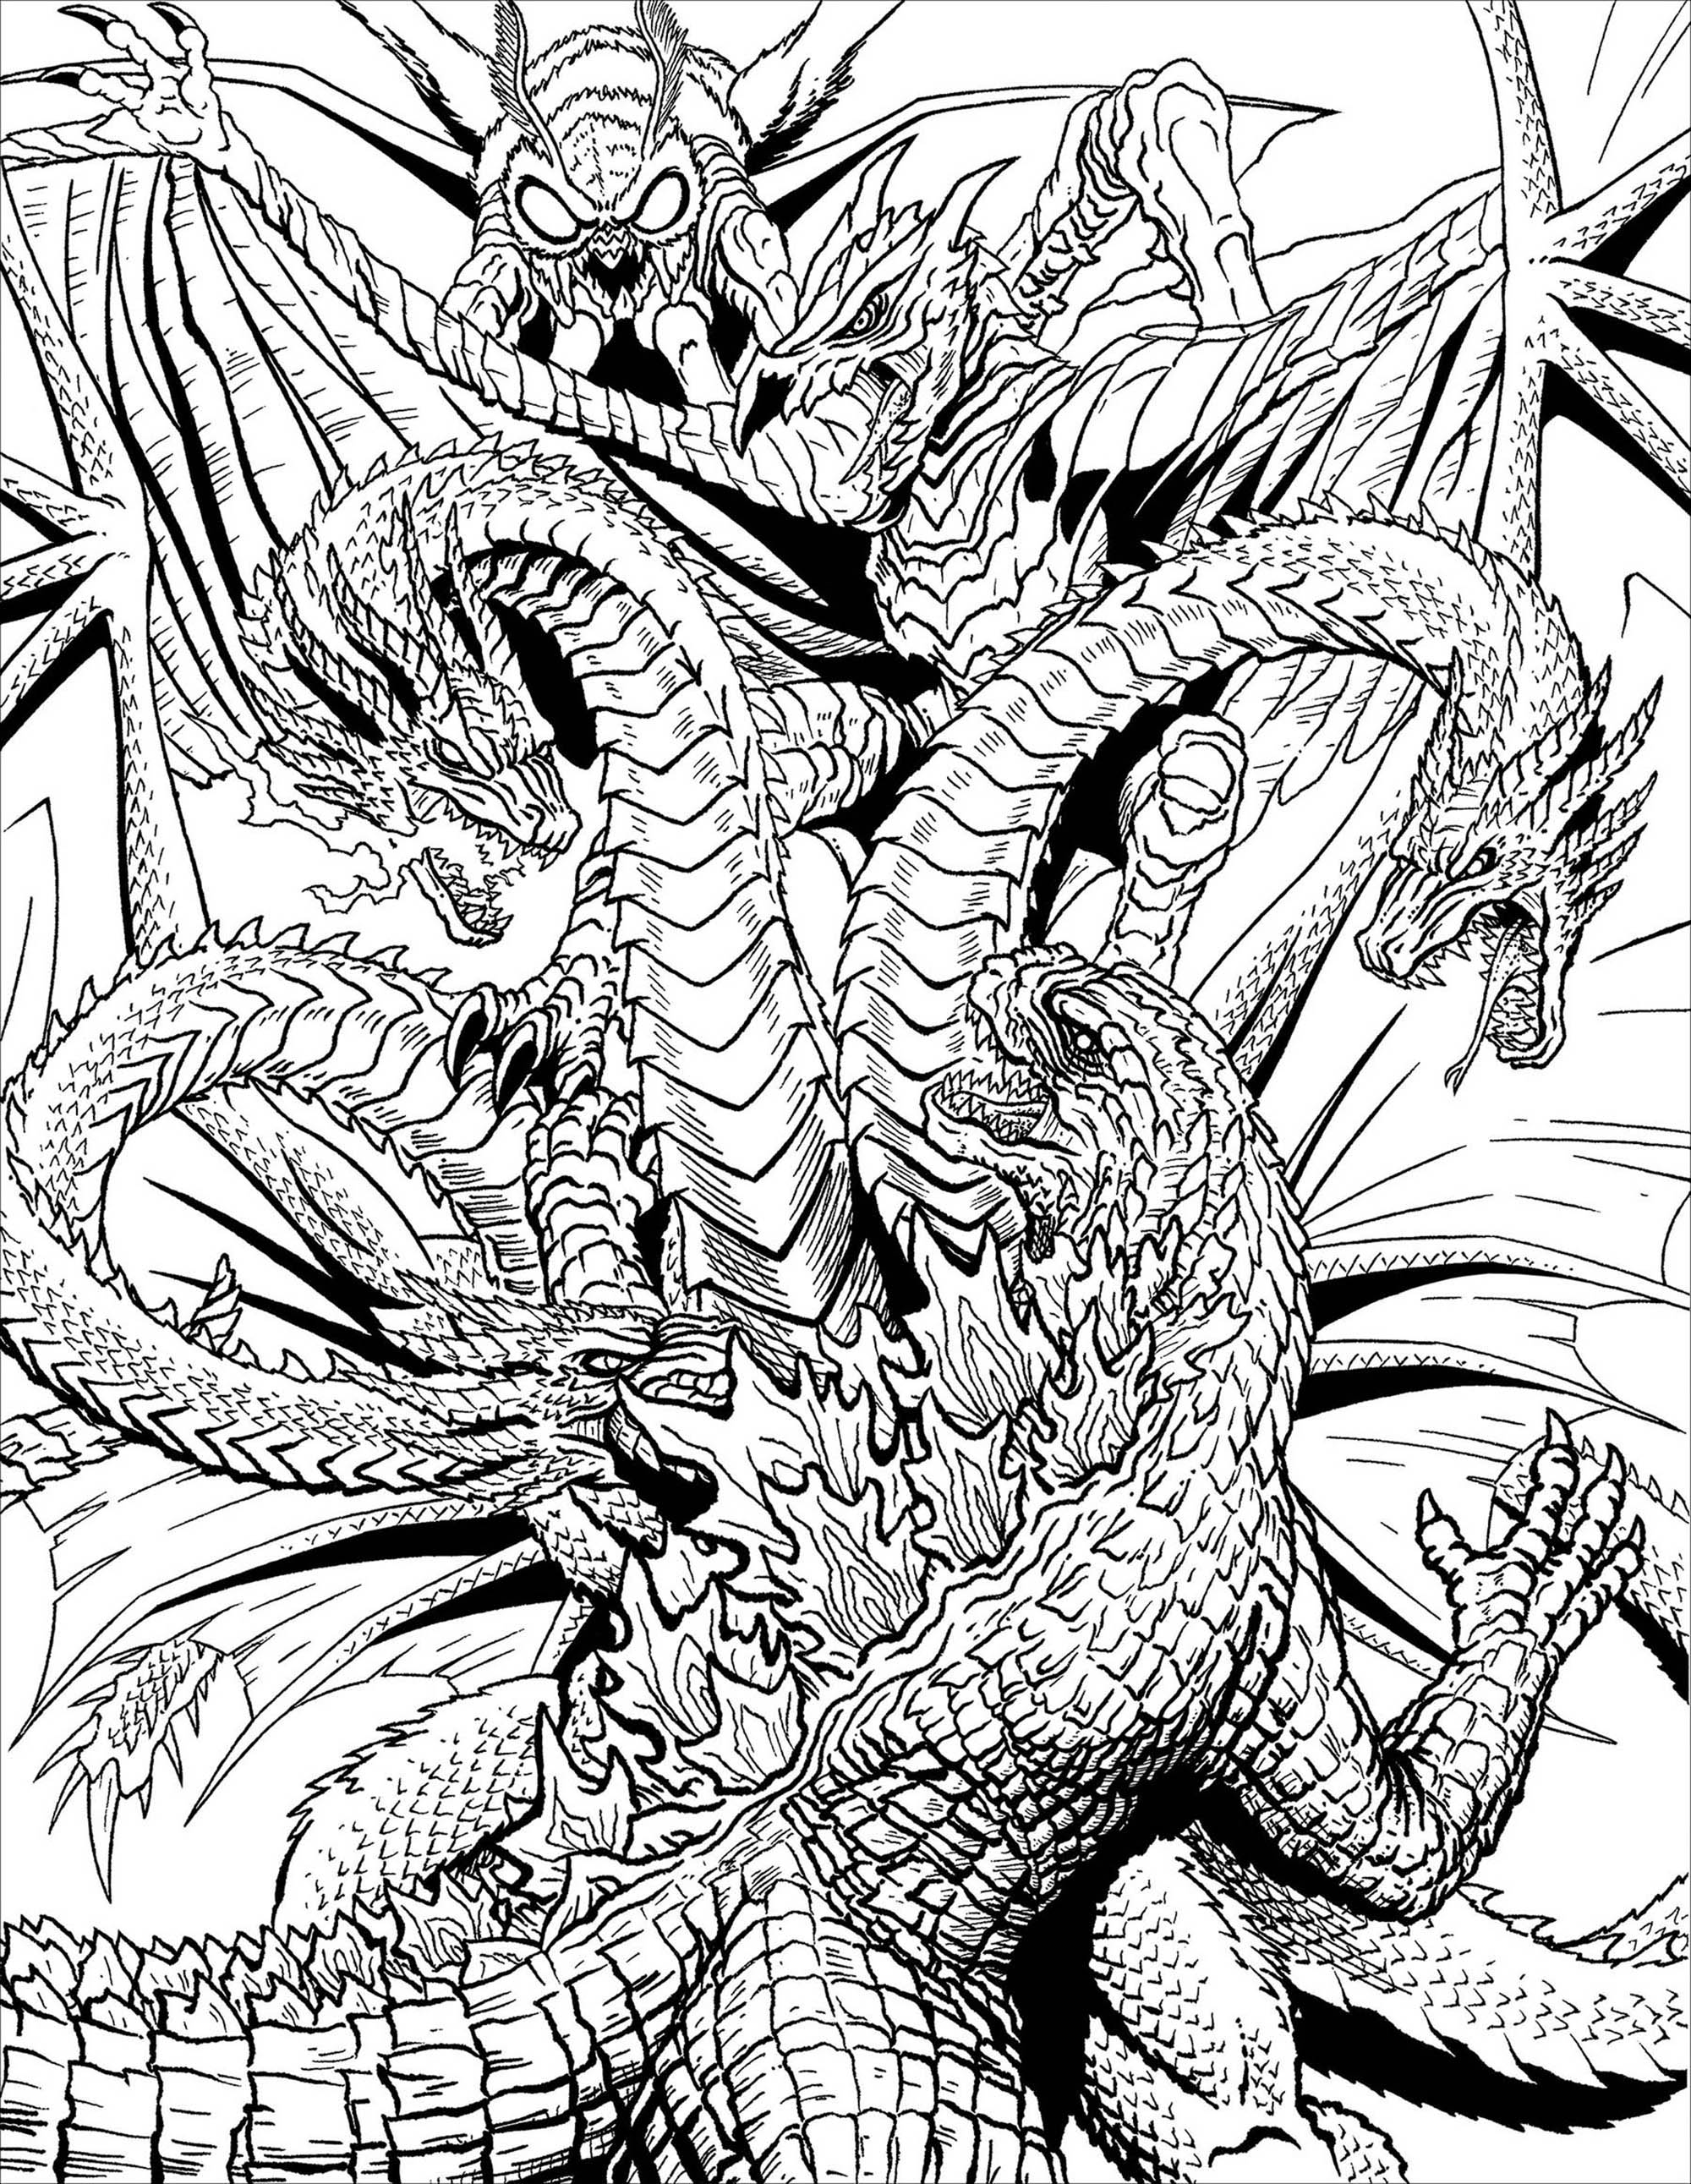 dragons 3 coloring pages how to train your dragon 3 coloring pages dragons coloring 3 pages